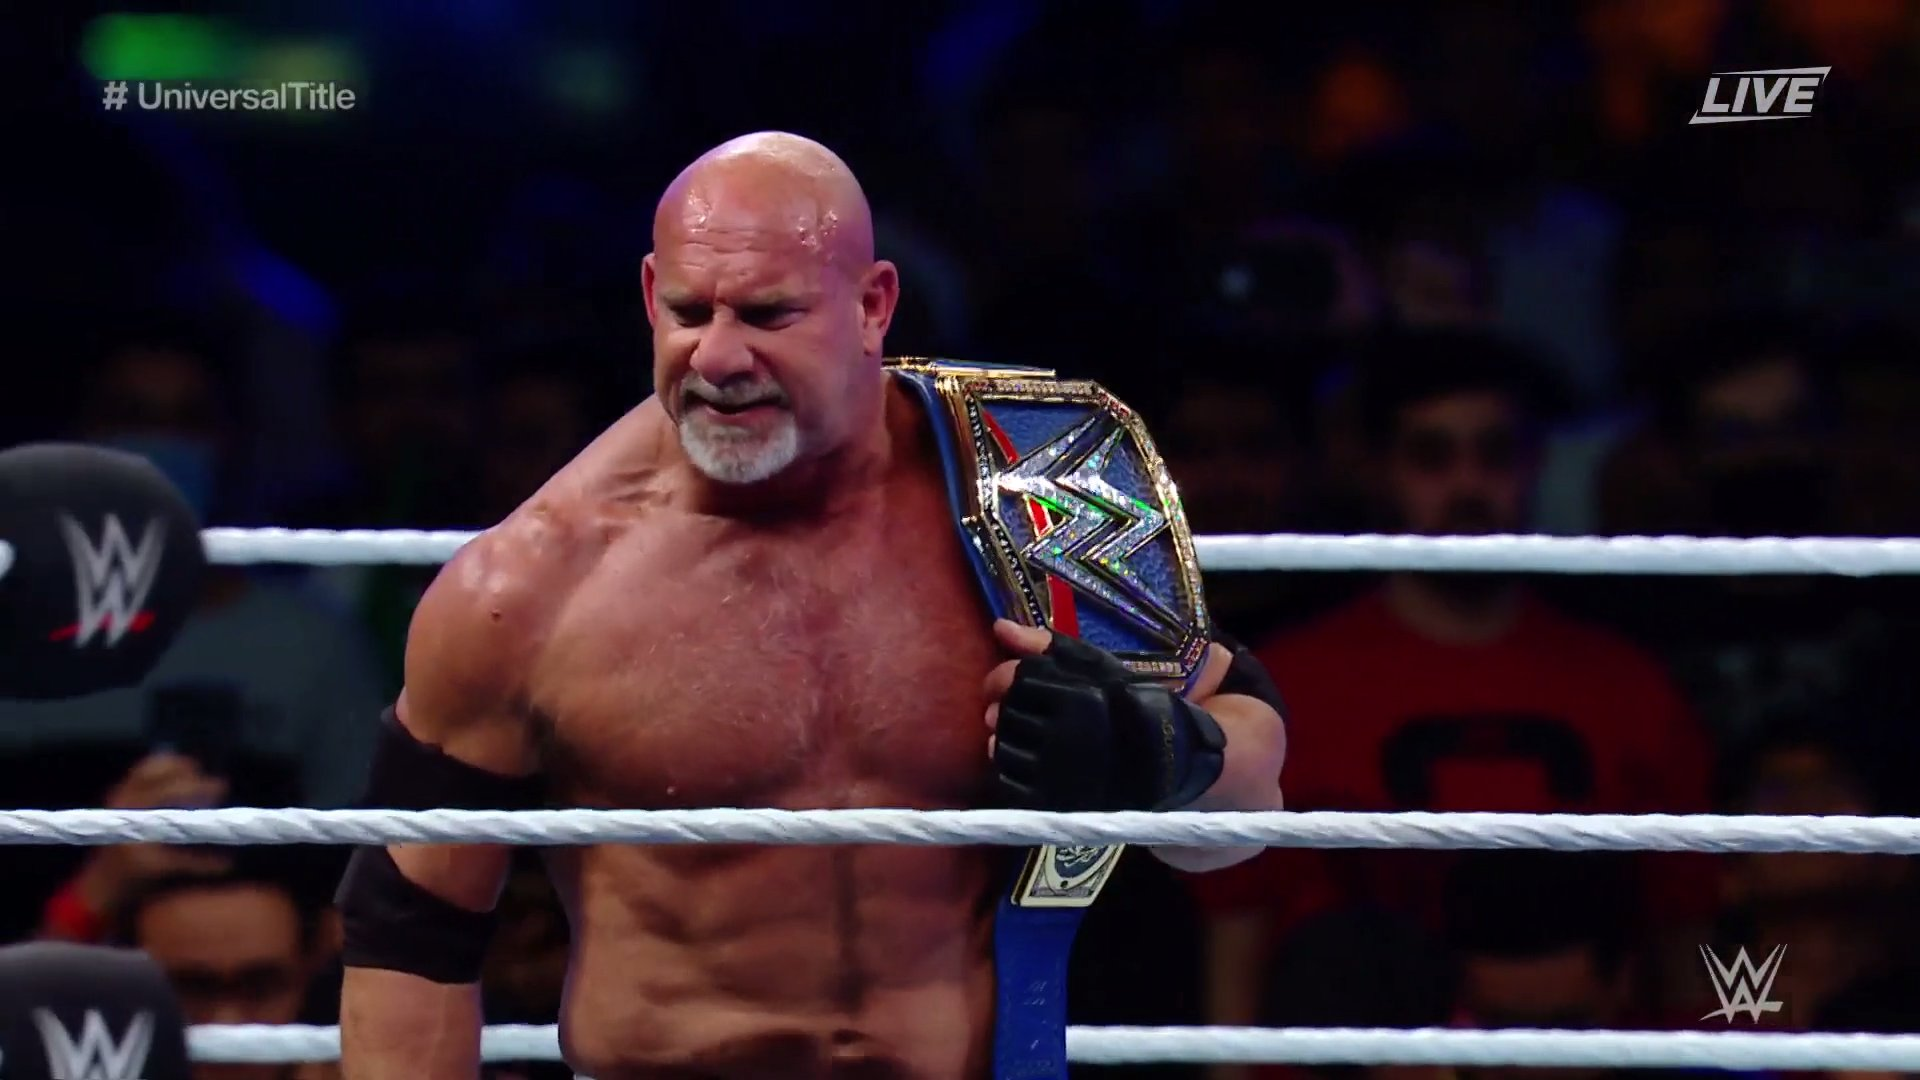 Goldberg defeats The Fiend to become WWE Universal Champion